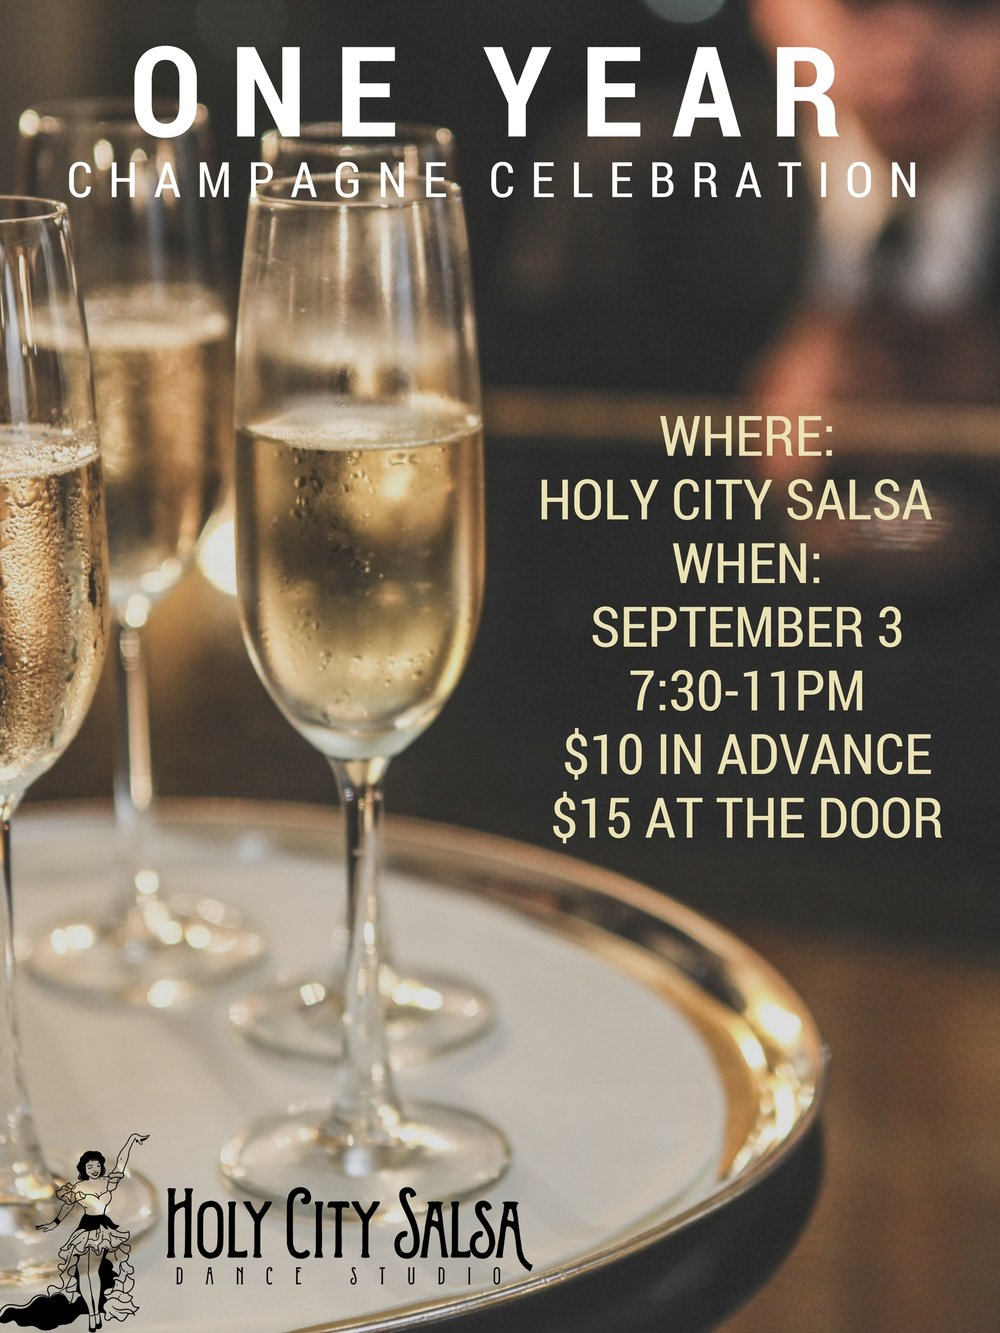 Raise a glass! We are celebrating one year of Holy City Salsa :D Join us for a champagne toast, special performances, open dancing, and prizes.   Free Intro Salsa lesson at 7:30 pm   Open dancing 8-11 pm  Break for performances at 9:30 pm  $10 in advance, $15 day of.  Buy a ticket today and join the party!